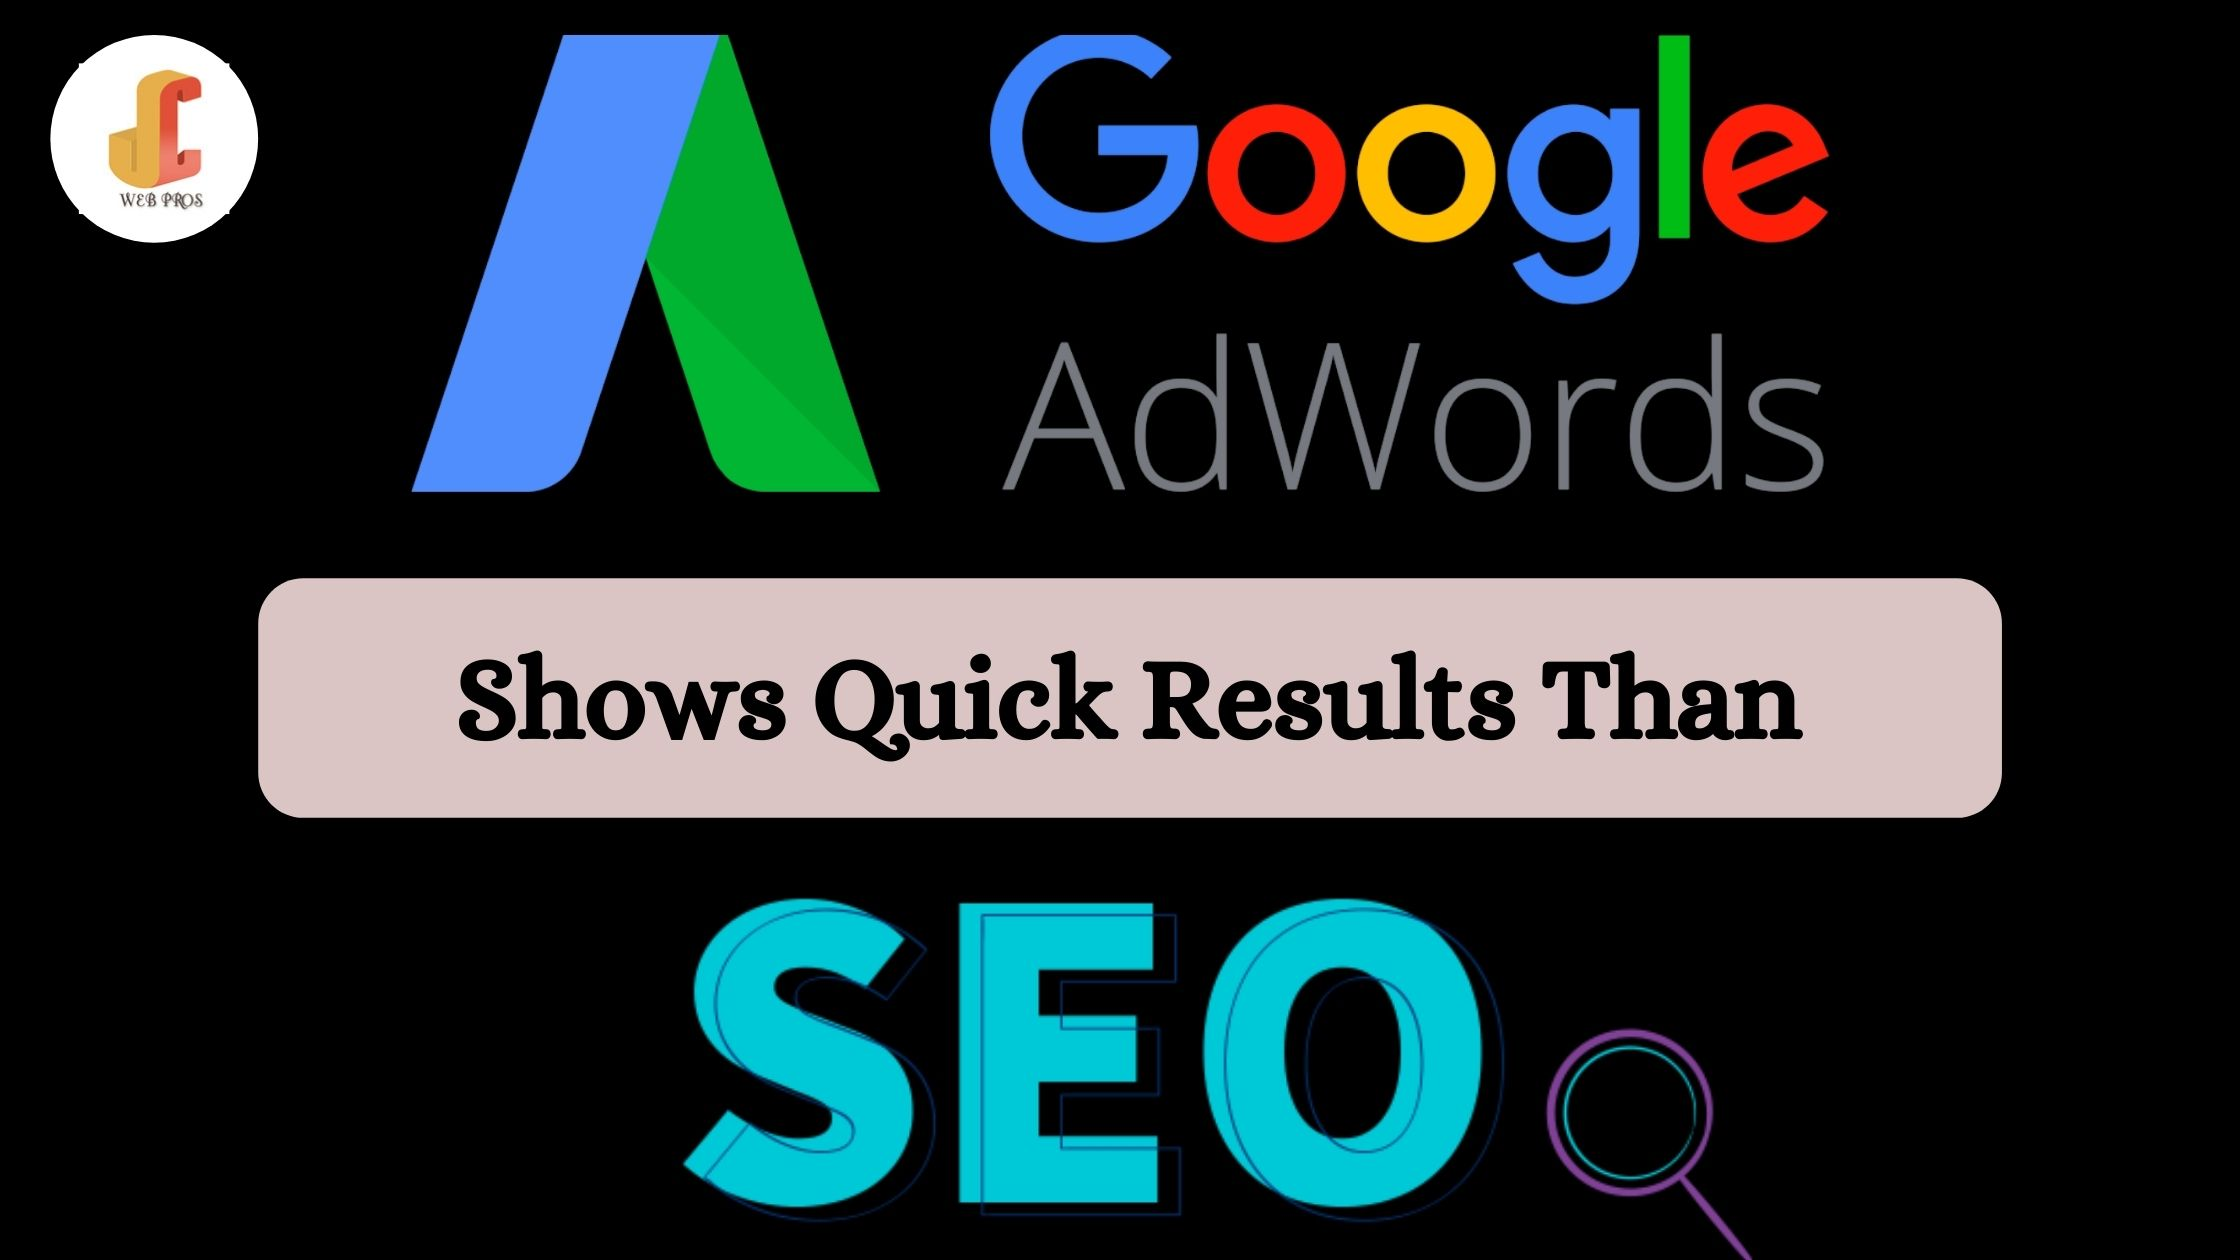 Google Adwords Show Quick Results than SEO